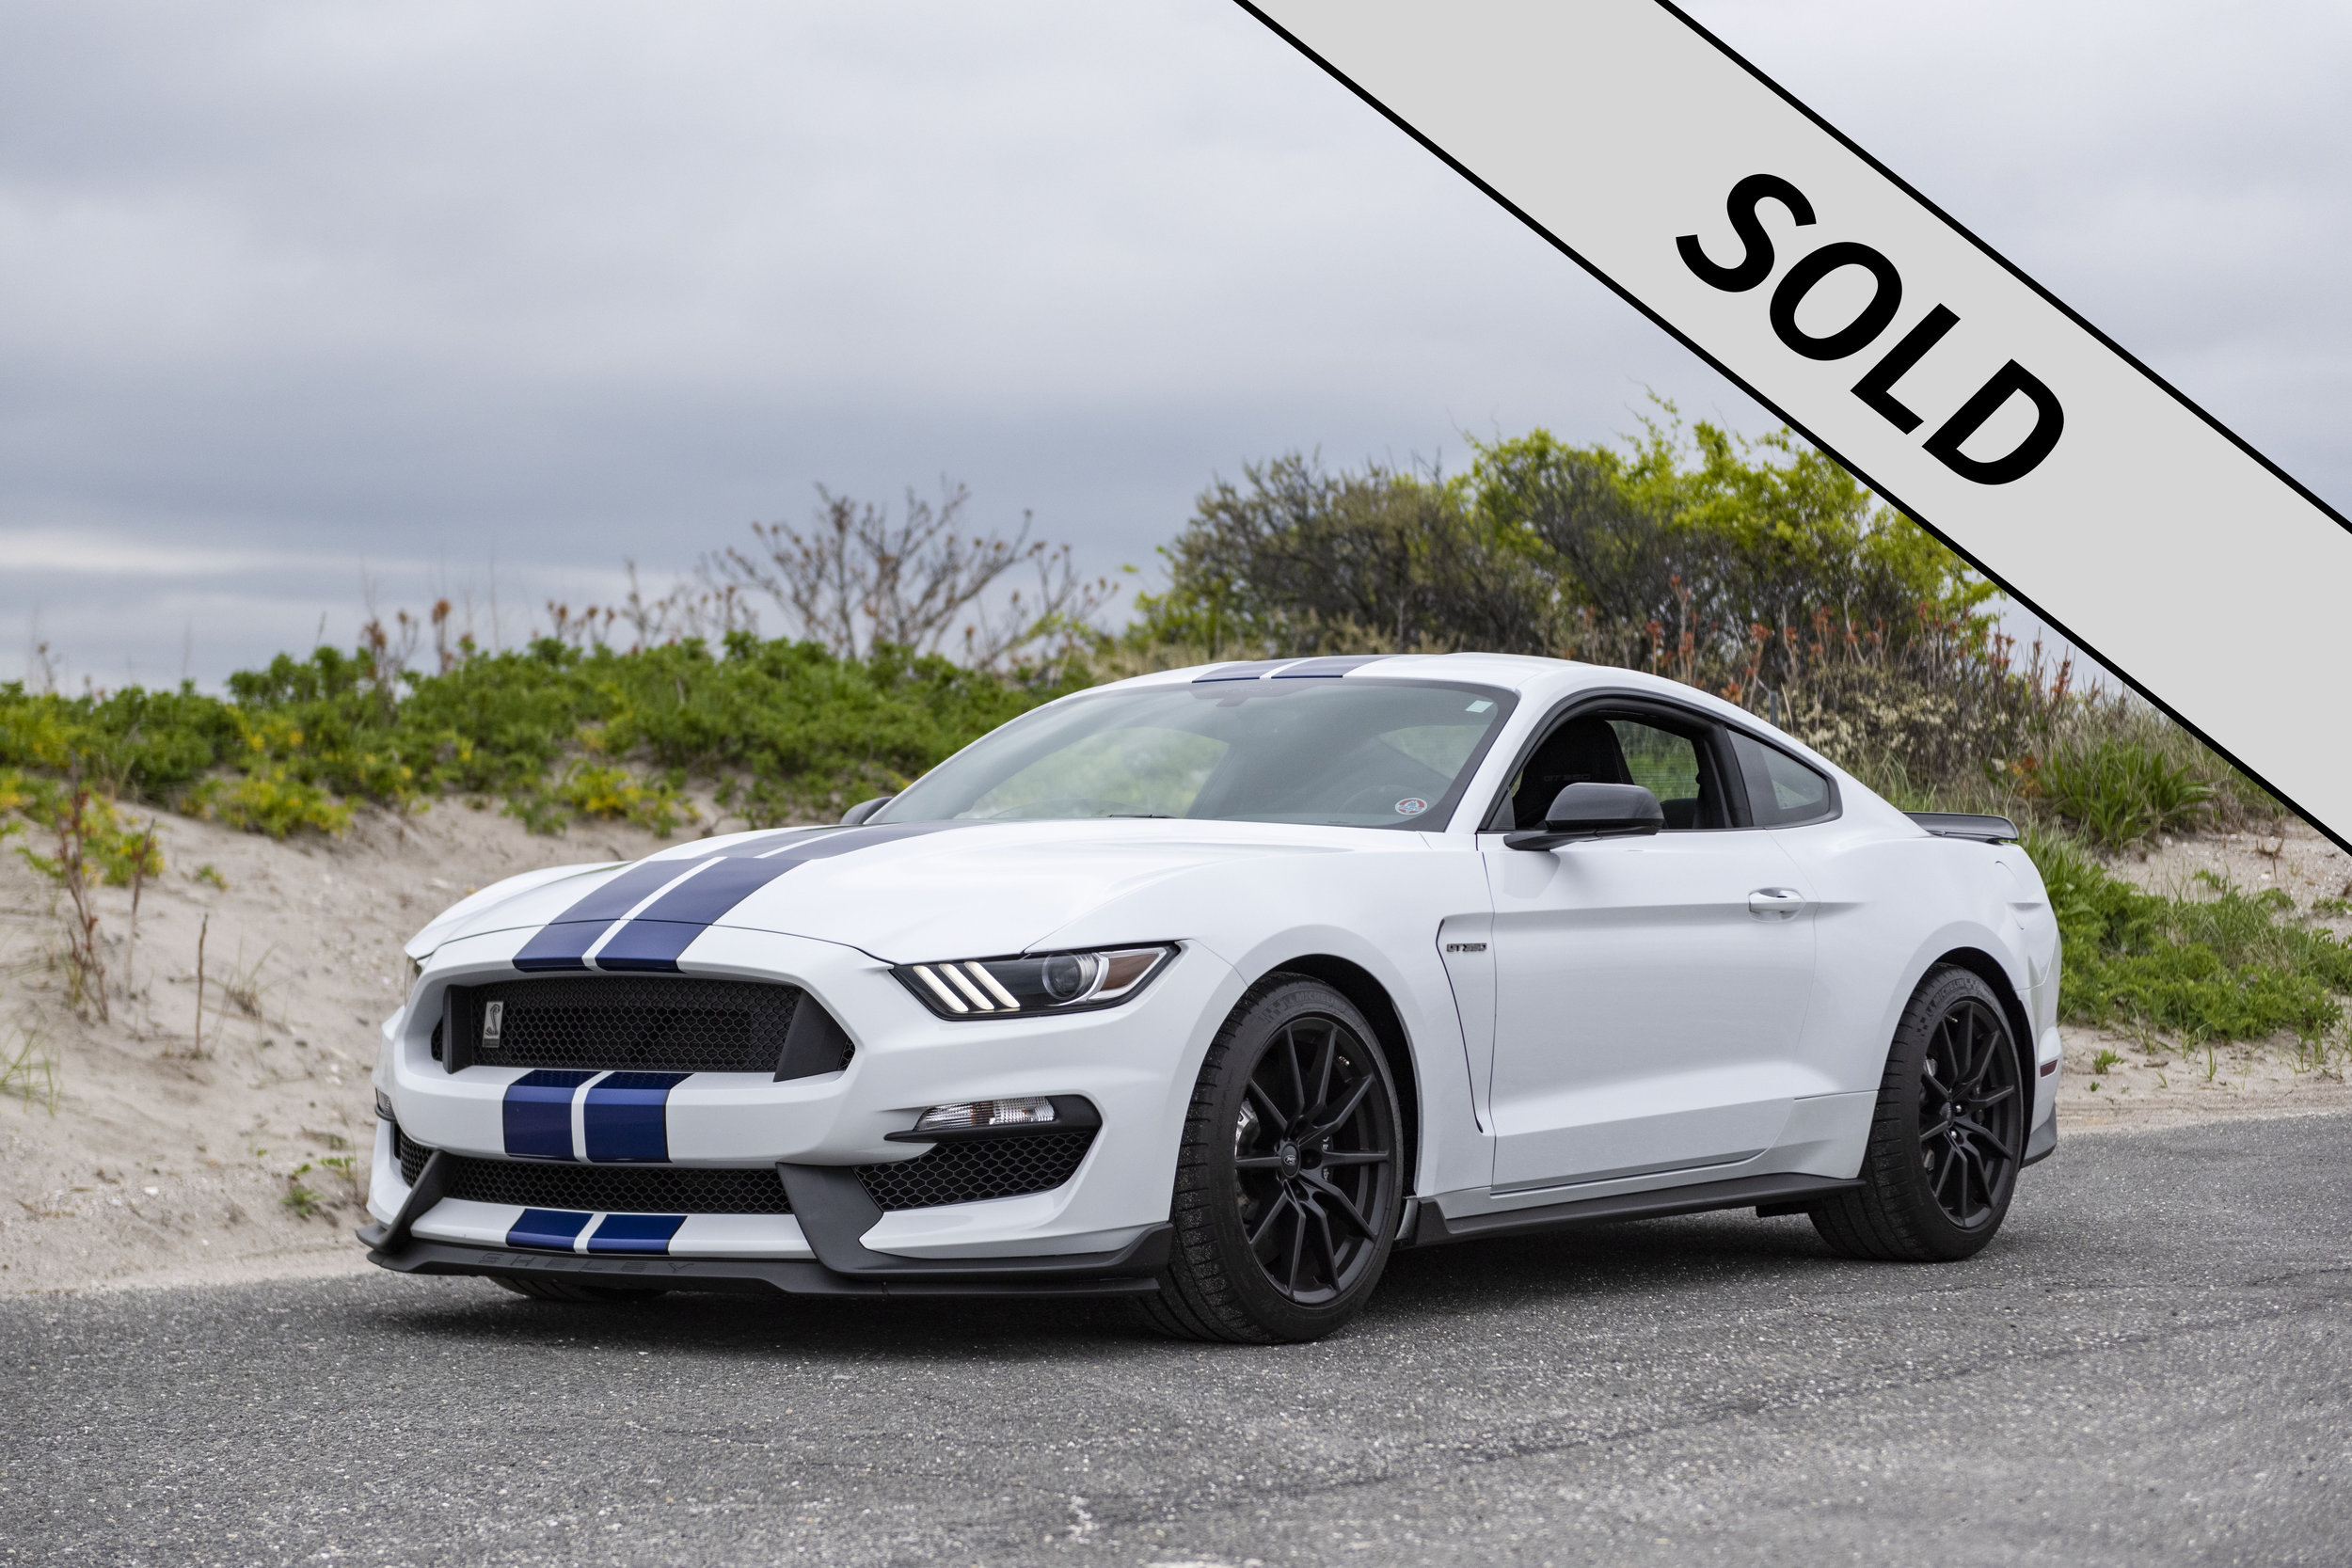 2016 Ford Mustang Shelby GT350 SOLD.jpg